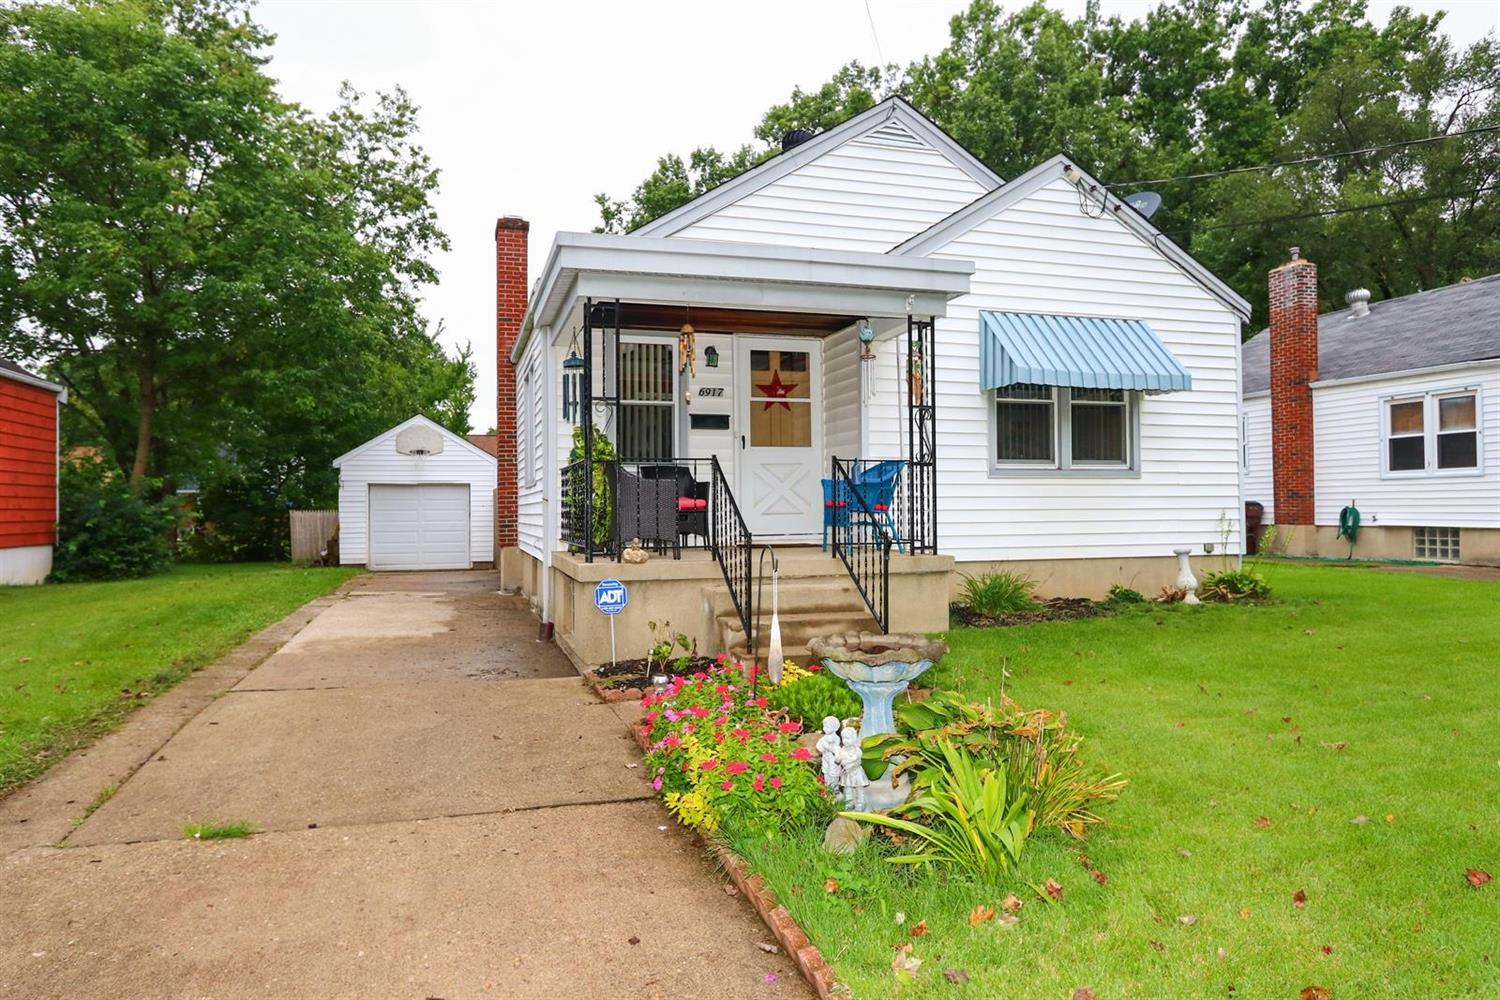 Property for sale at 6917 Mar Bev Drive, North College Hill,  OH 45239